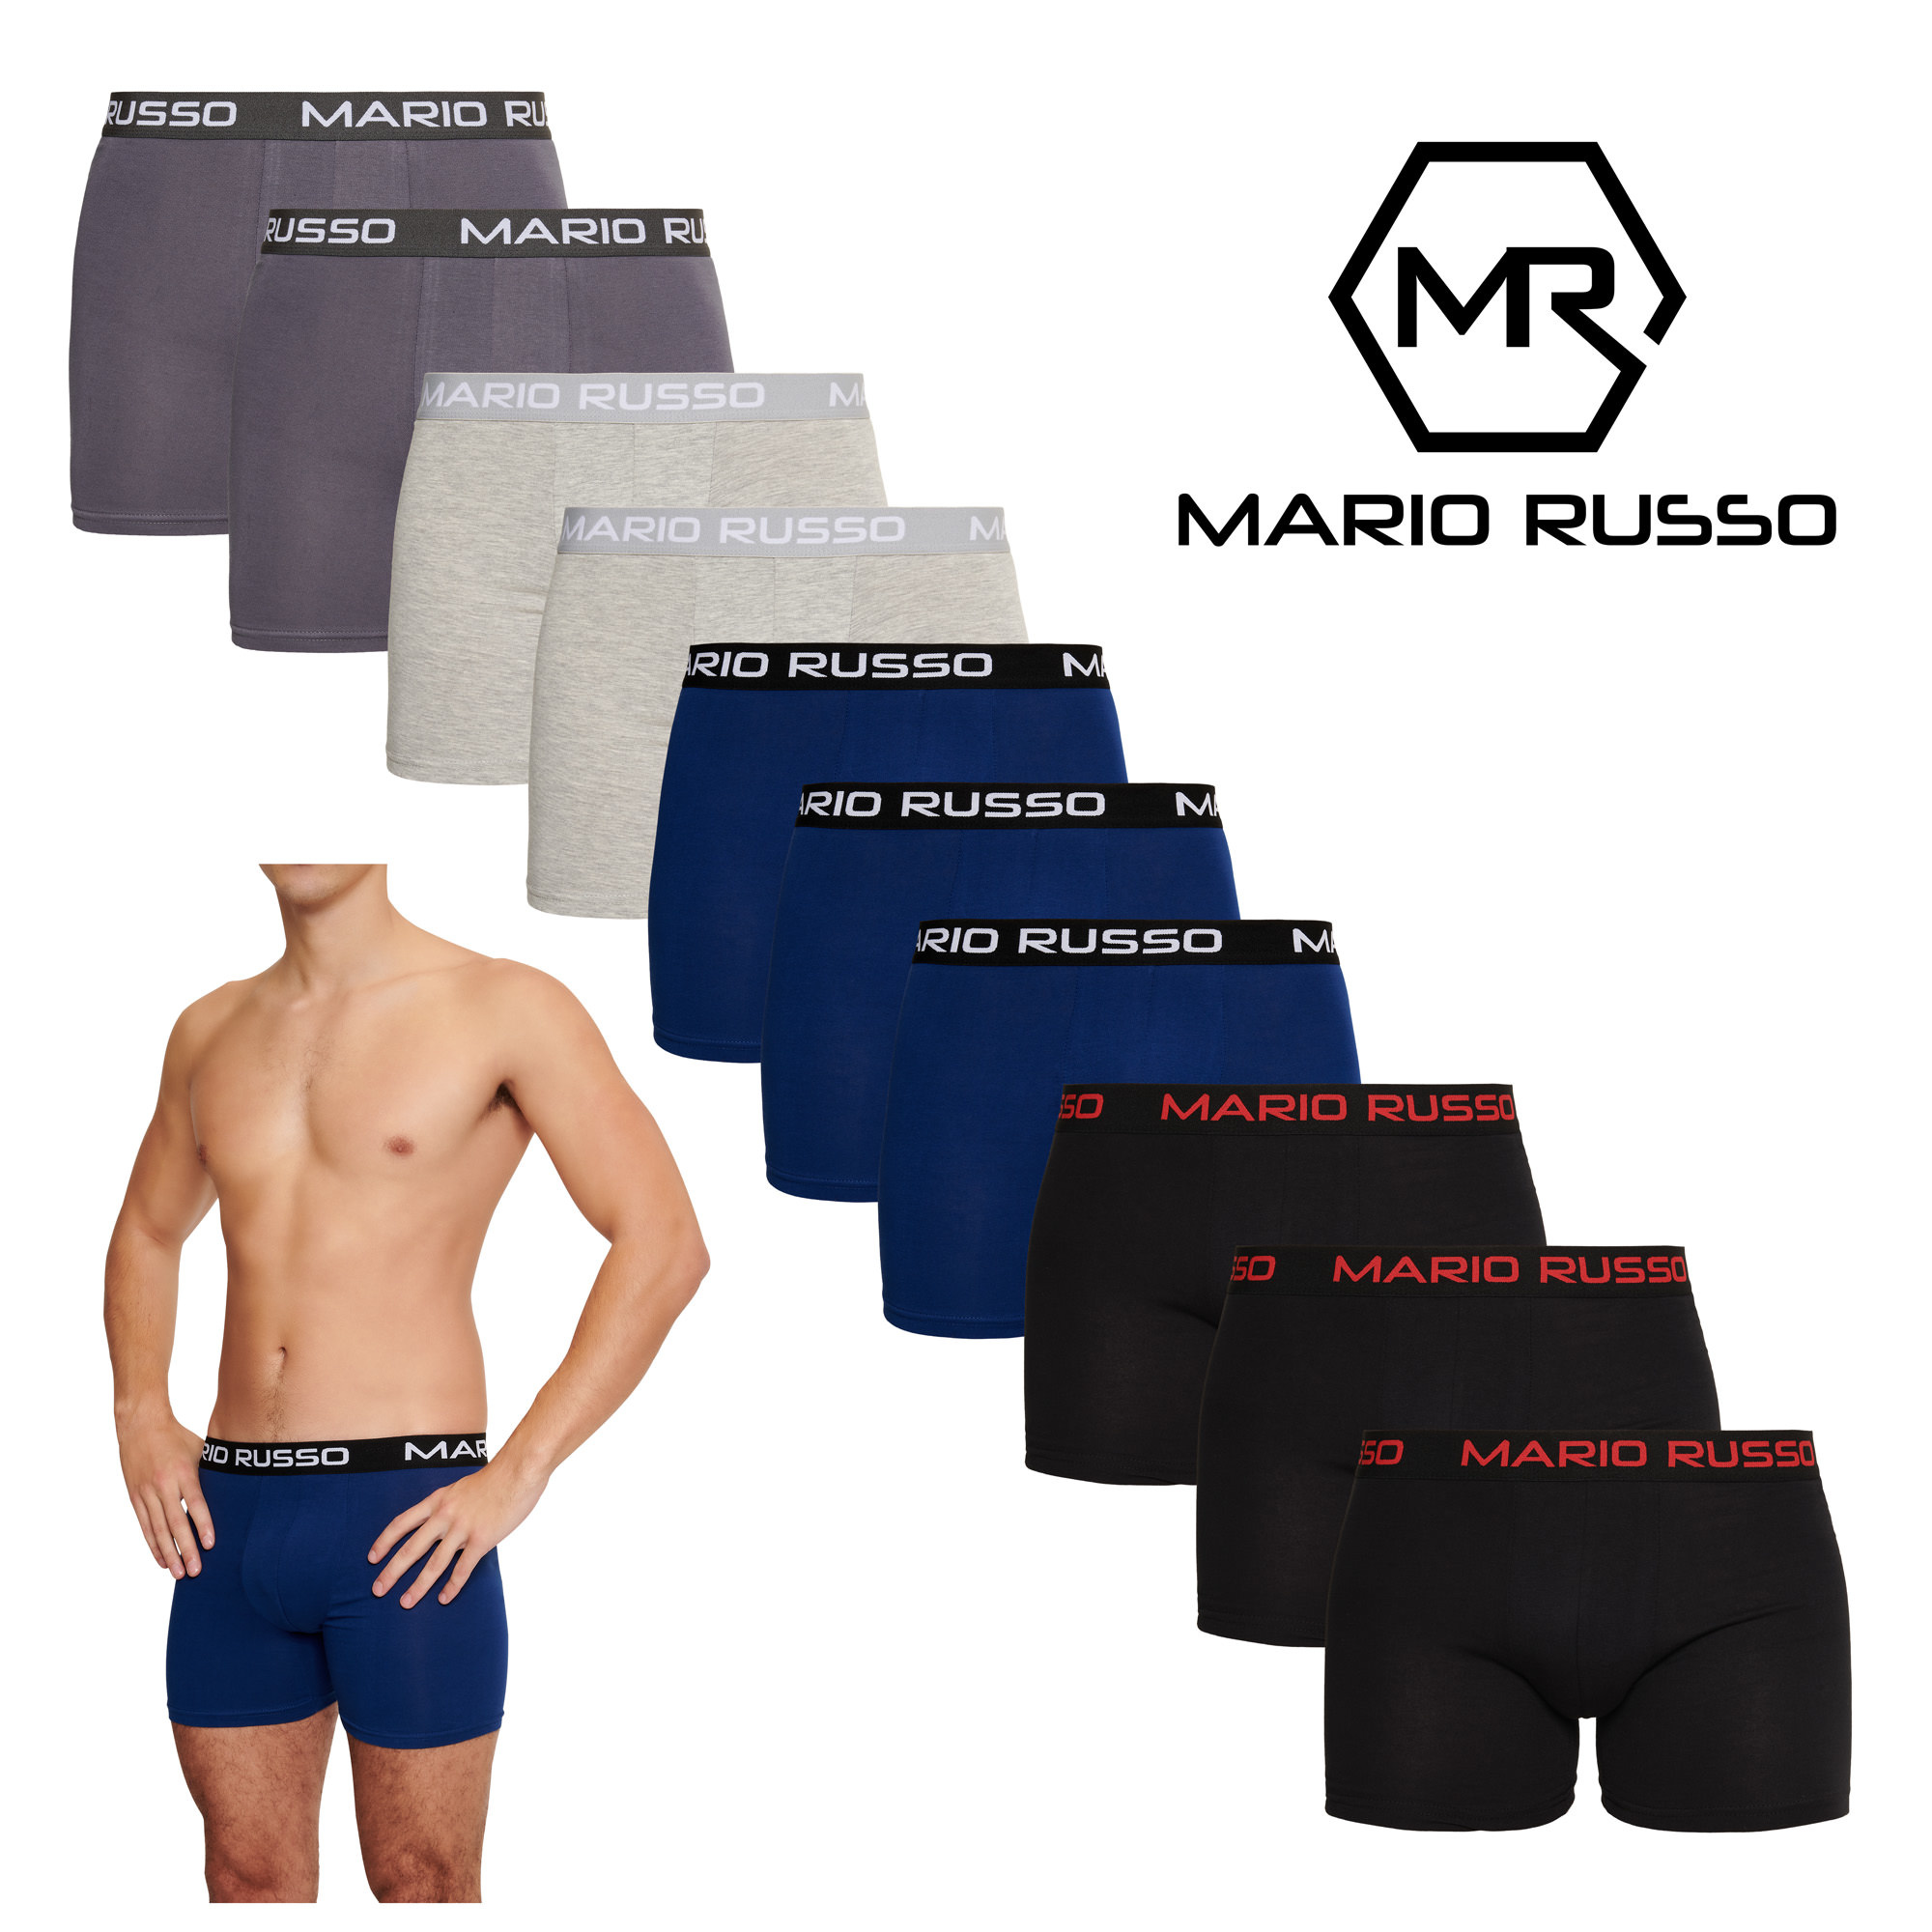 10-pack Mario Russo boxershorts